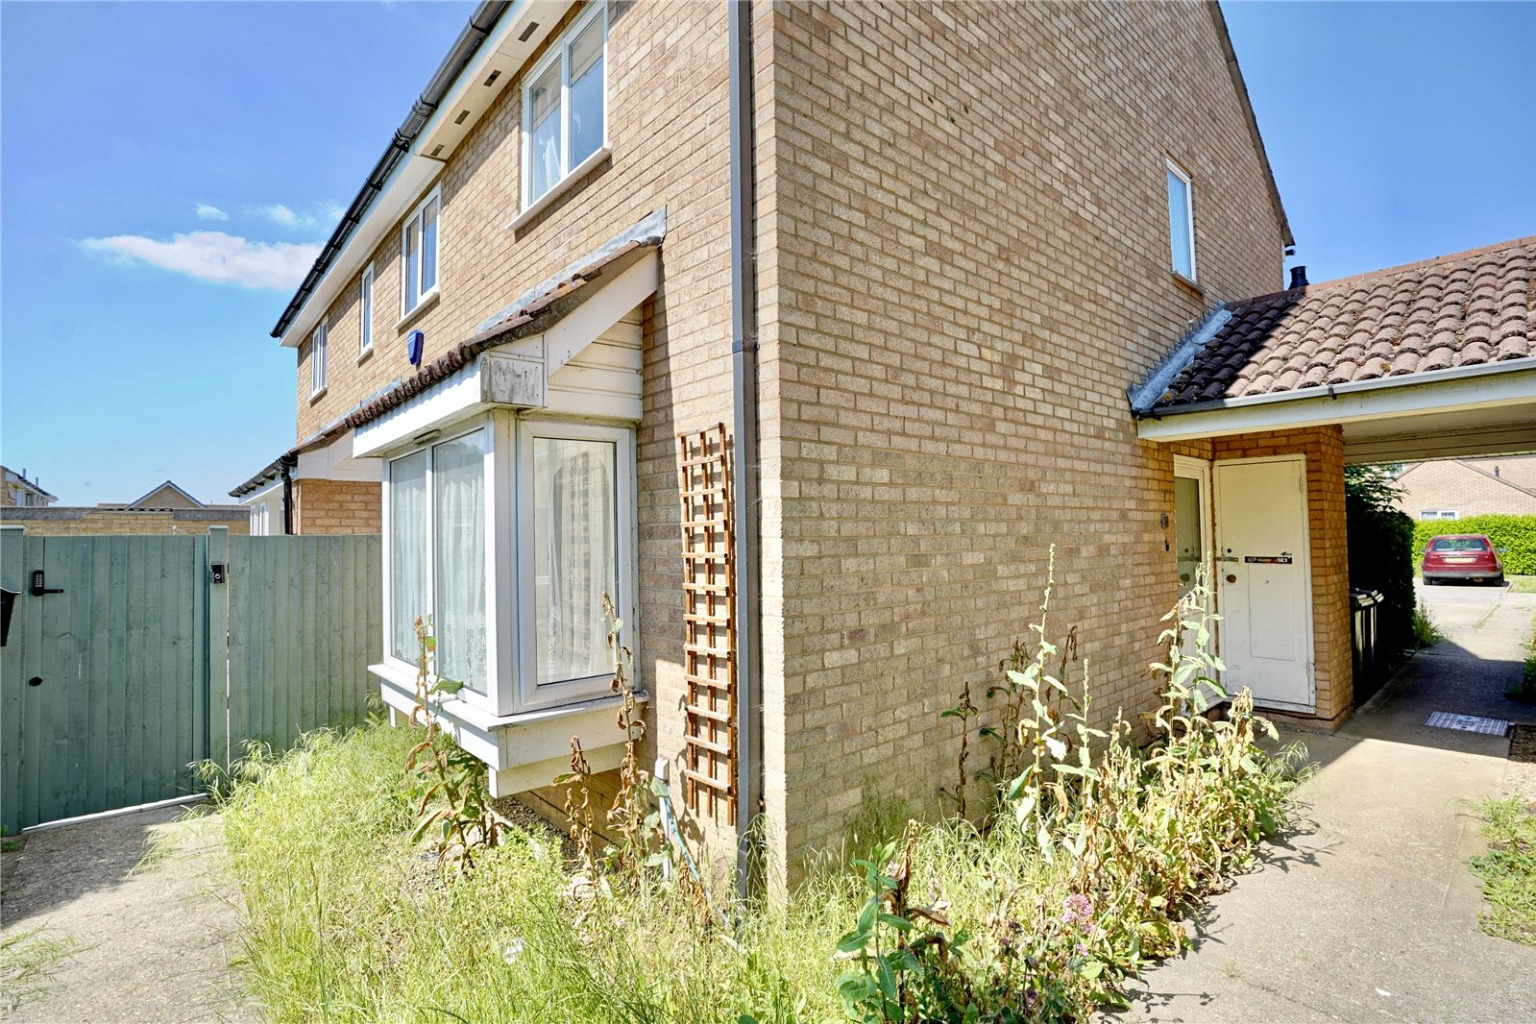 2 bed end of terrace house for sale in Roe Green, St. Neots, PE19